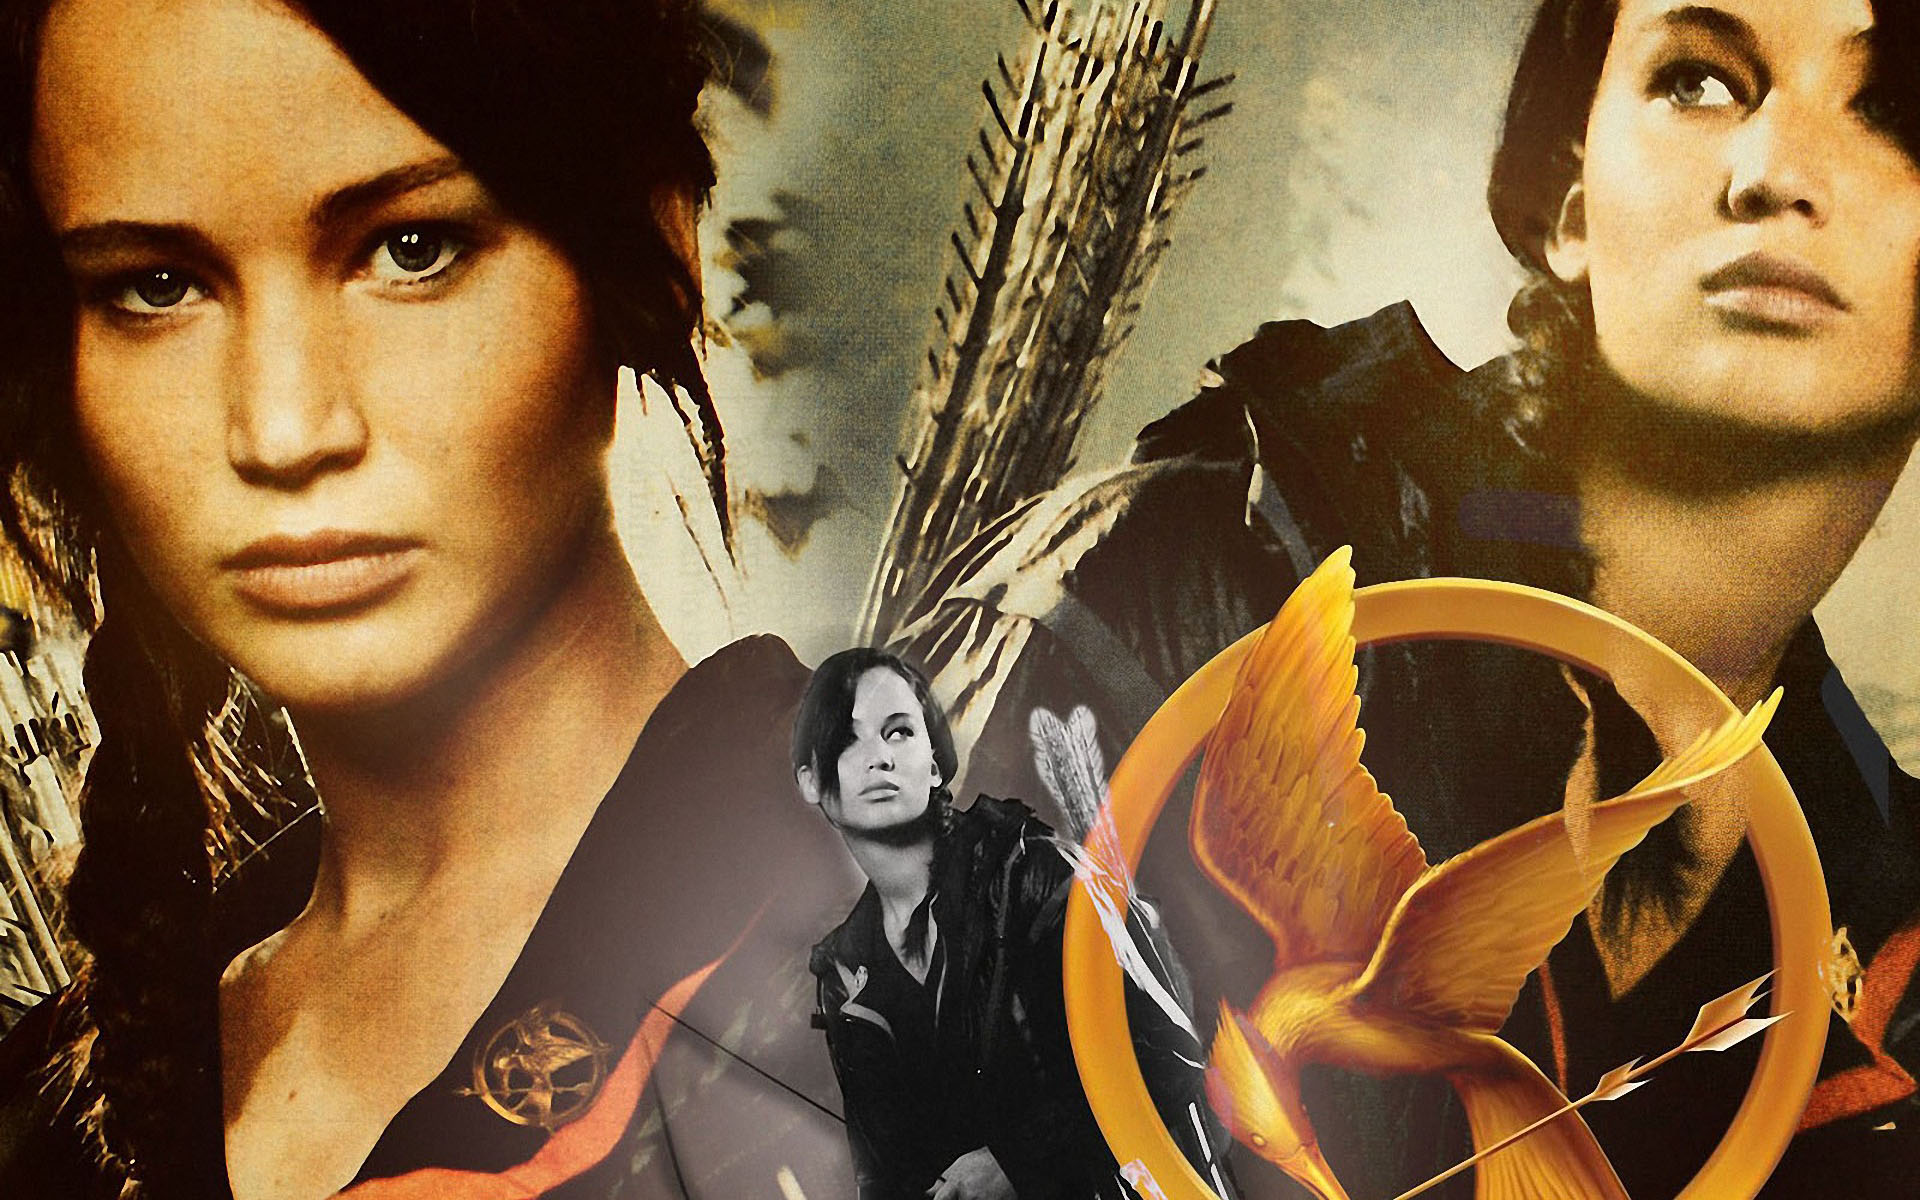 The Hunger Games Wallpaper 1920x1200 Wallpapers 1920x1200 Wallpapers 1920x1200